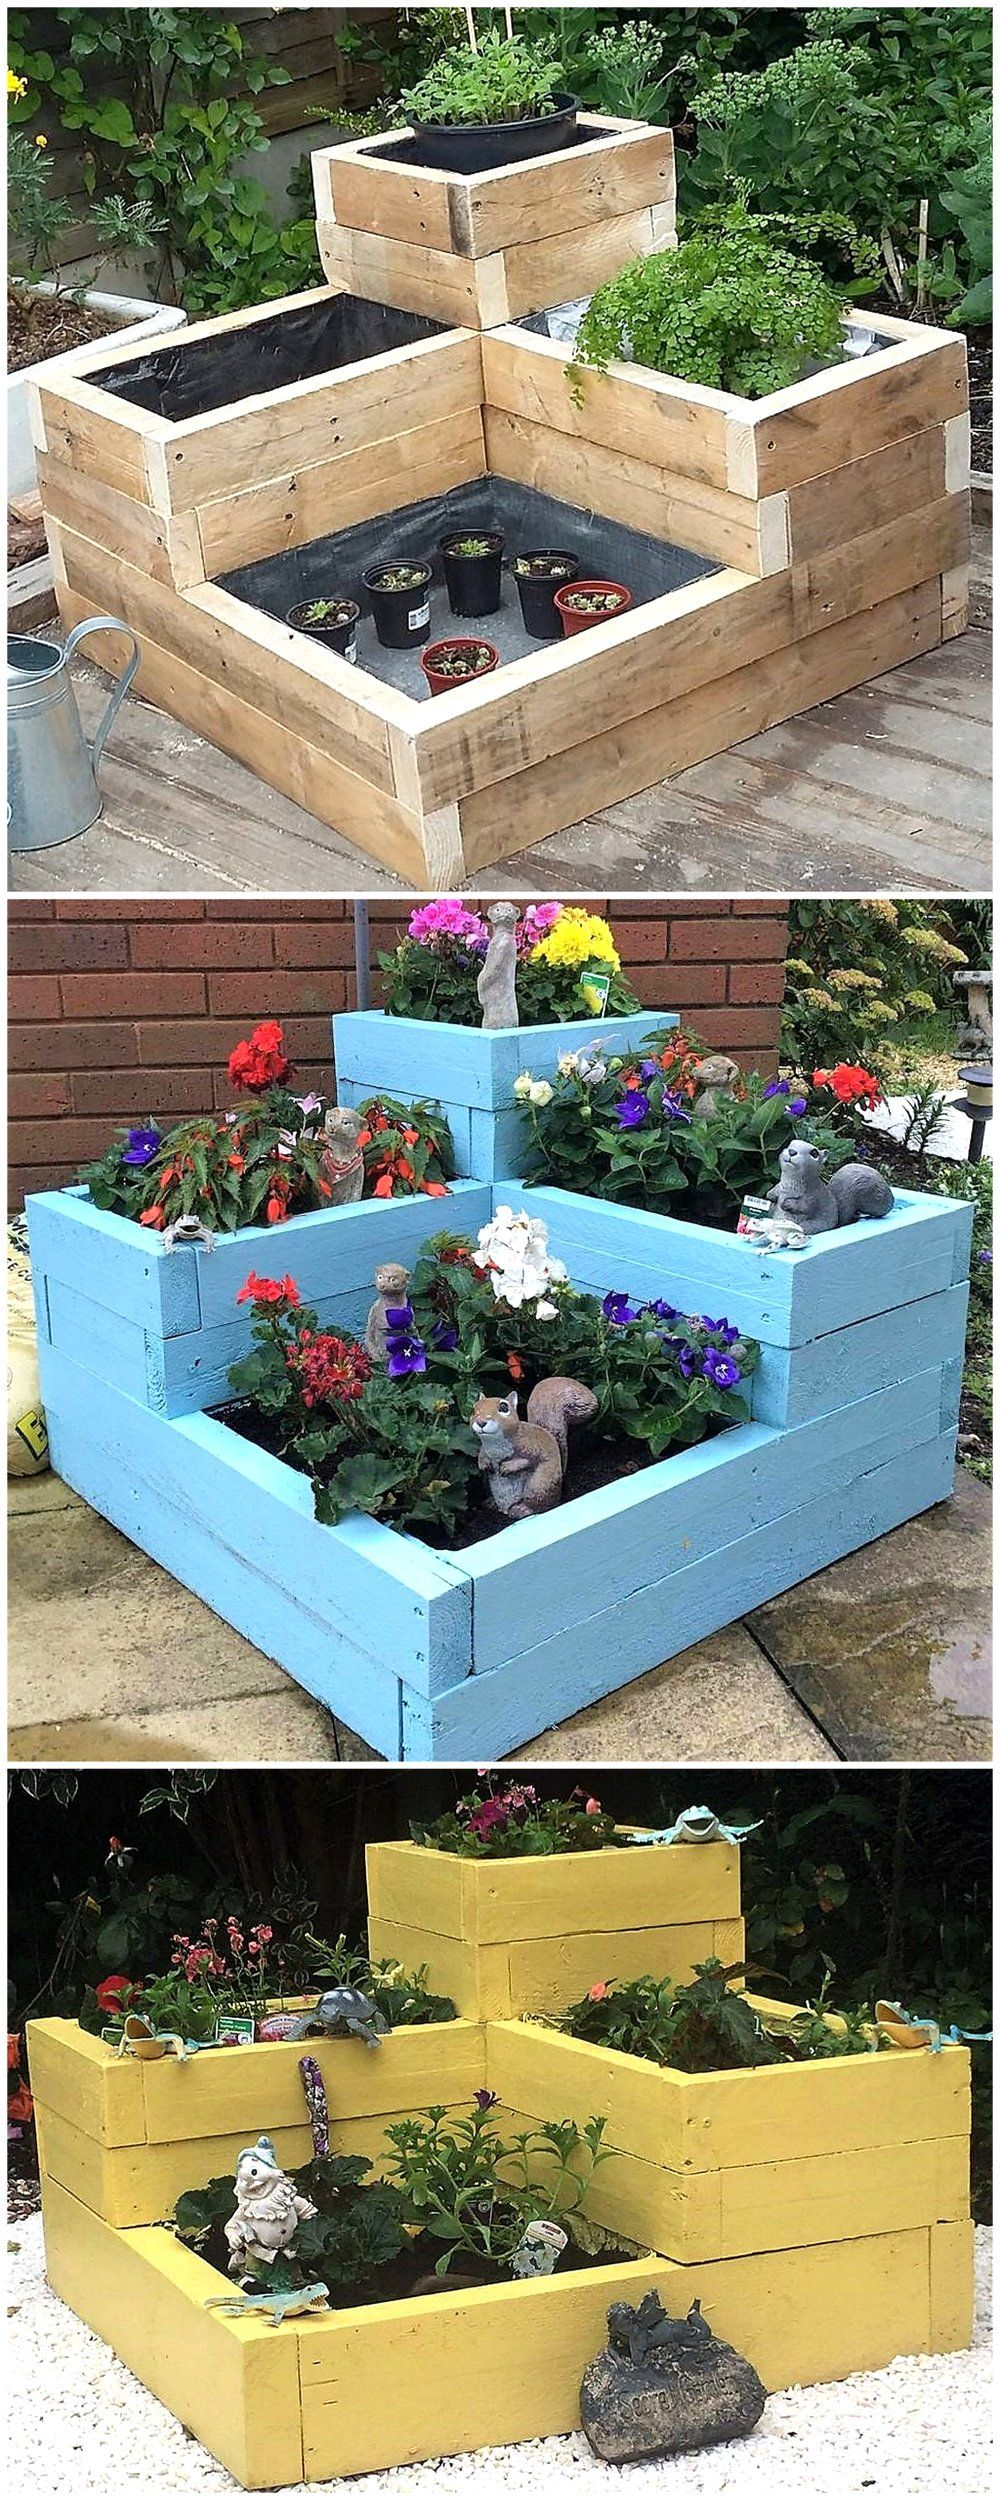 Creative Ideas With Wooden Pallets Home Diy